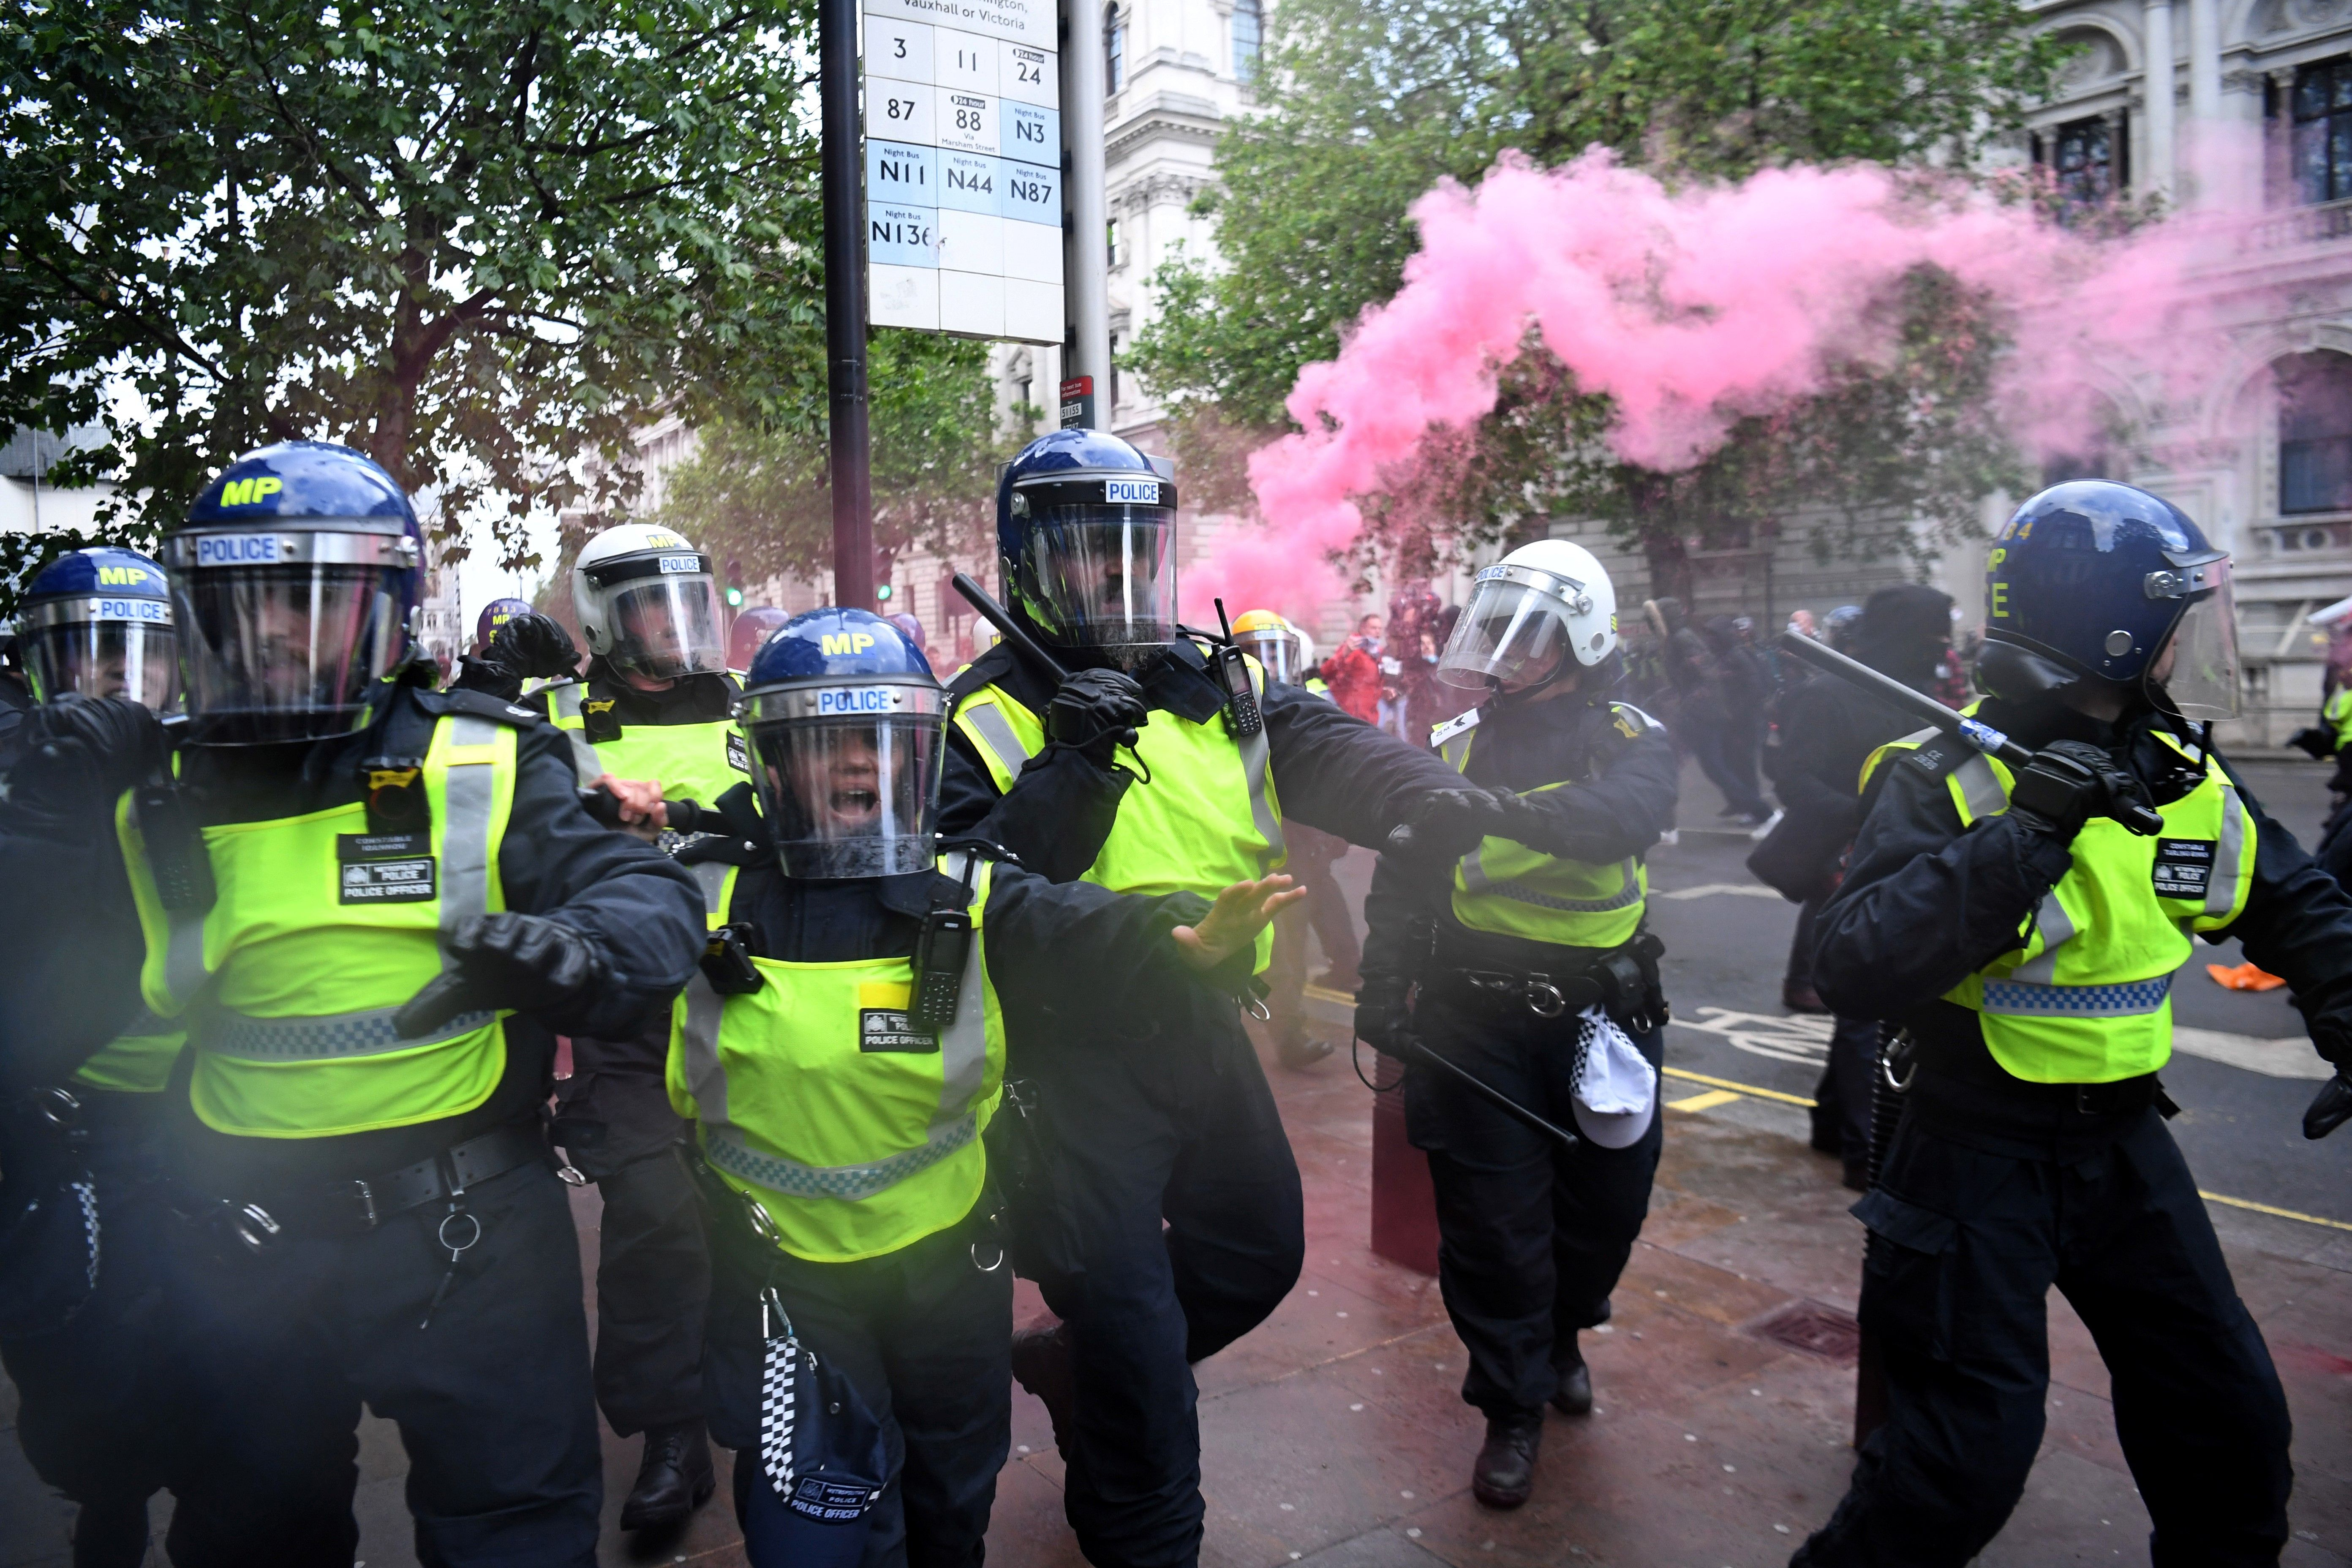 """Police officers in riot gear shout to protestors near Downing Street, in central London on June 6, 2020, during a demonstration organised to show solidarity with the Black Lives Matter movement in the wake of the killing of George Floyd, an unarmed black man who died after a police officer knelt on his neck in Minneapolis. - The United States braced Friday for massive weekend protests against racism and police brutality, as outrage soared over the latest law enforcement abuses against demonstrators that were caught on camera. With protests over last week's police killing of George Floyd, an unarmed black man, surging into a second weekend, President Donald Trump sparked fresh controversy by saying it was a """"great day"""" for Floyd. (Photo by DANIEL LEAL-OLIVAS / AFP) (Photo by DANIEL LEAL-OLIVAS/AFP via Getty Images)"""